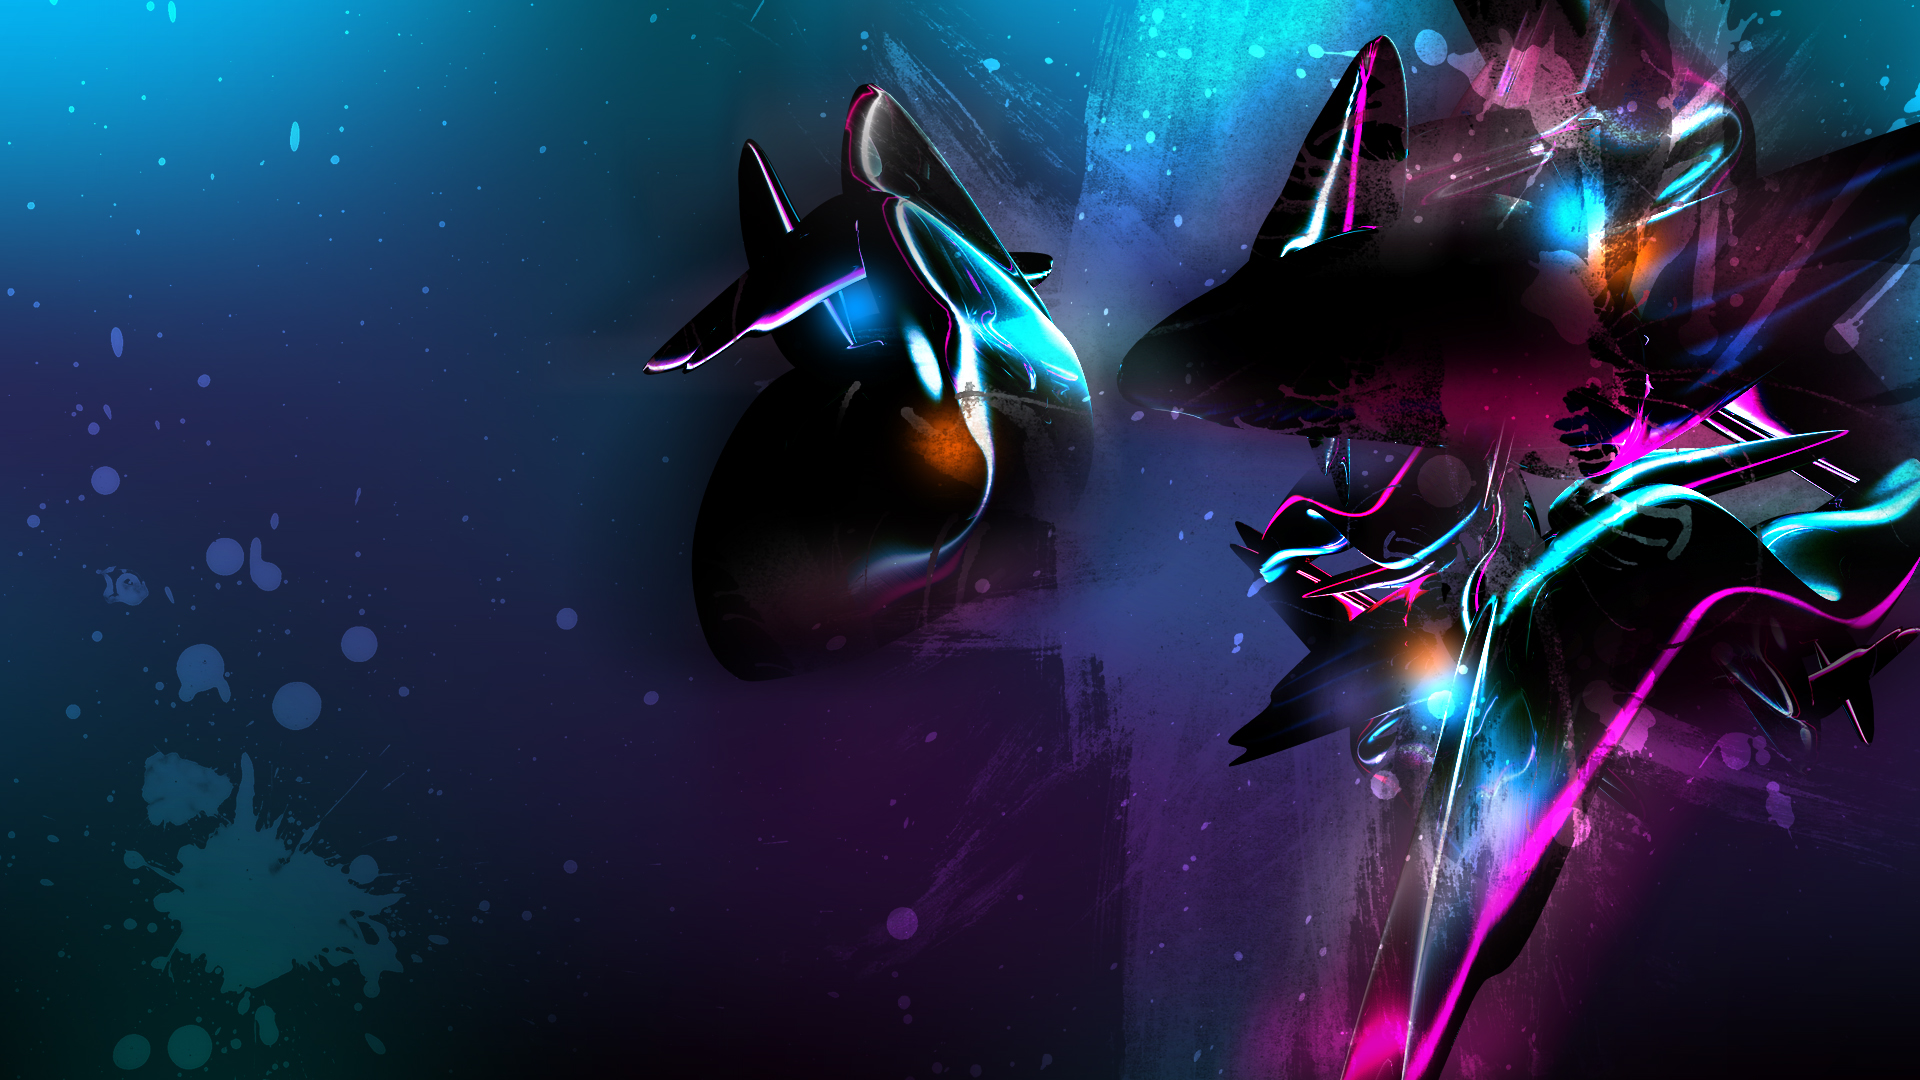 Hd Abstract Anime P Wallpaper P  Hd Wallpapers Background X